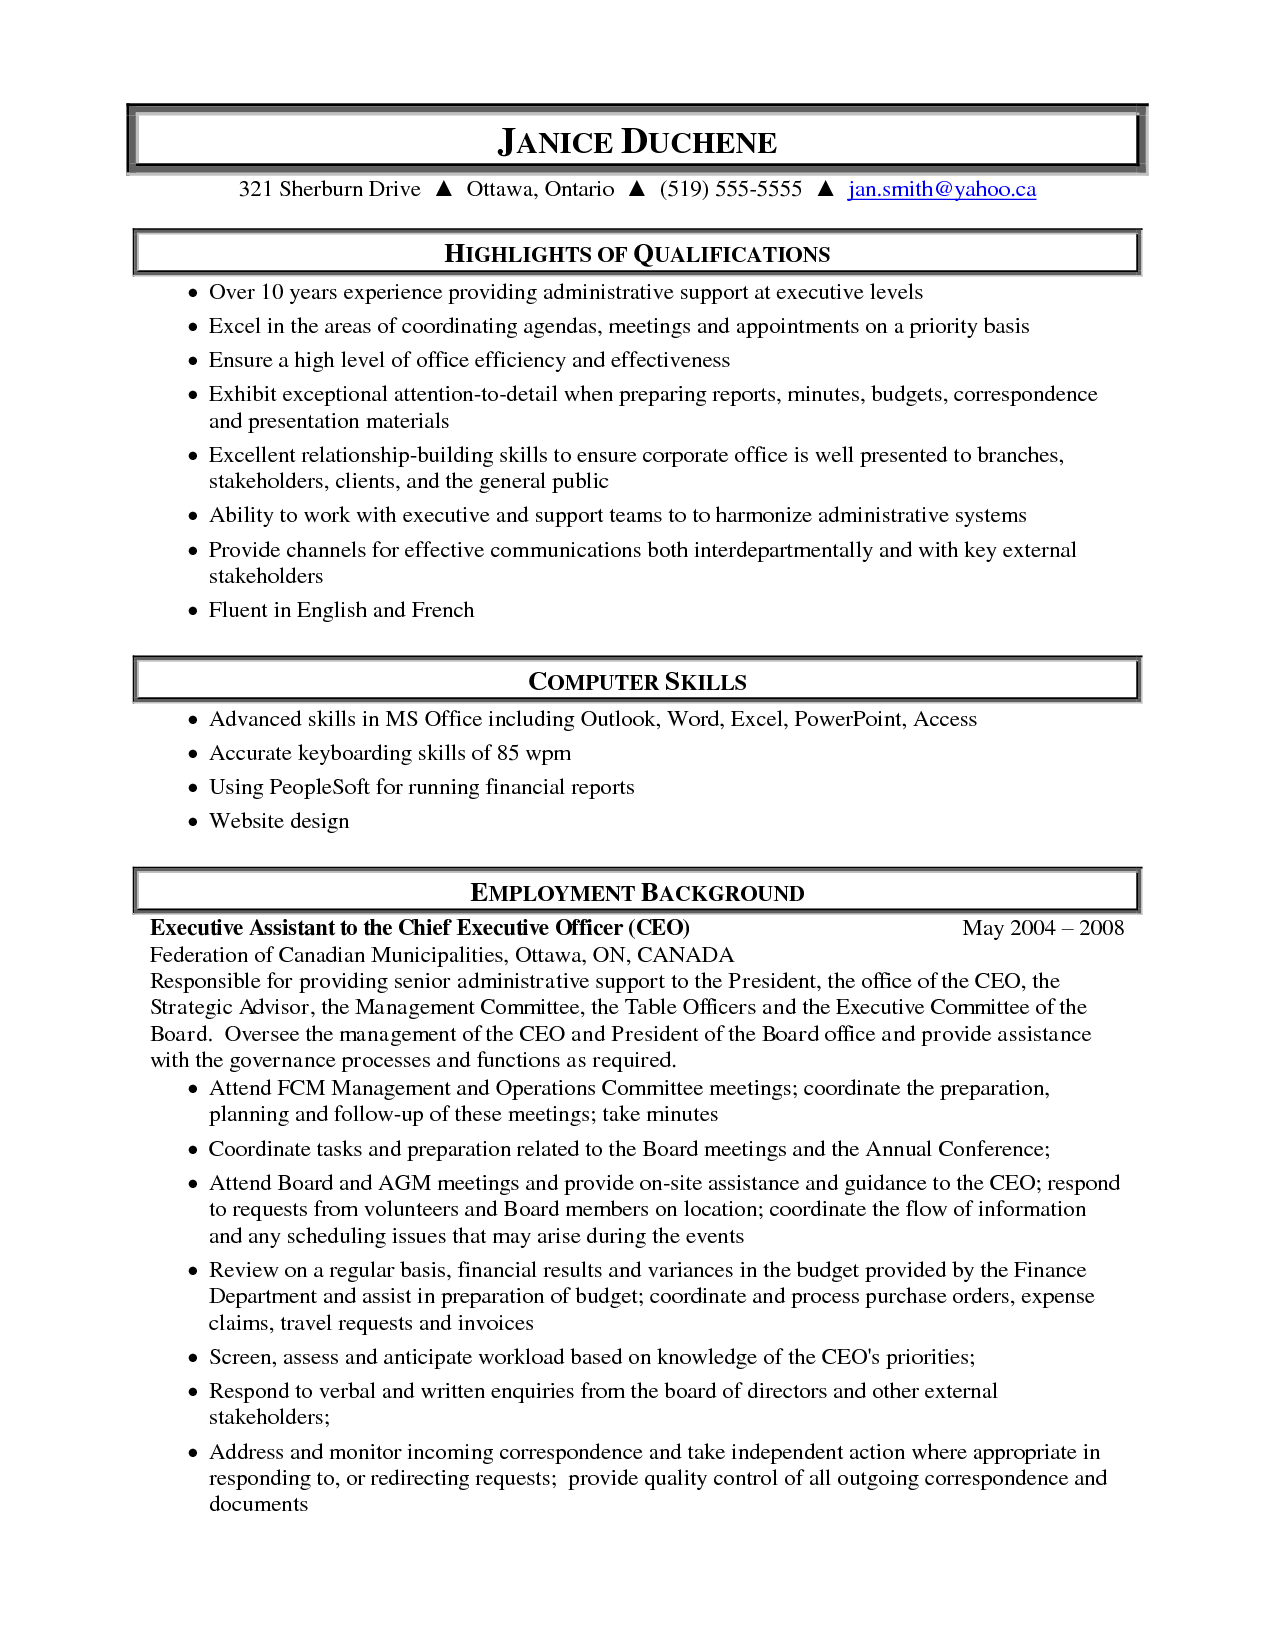 Administrative Assistant Resume Objective Examples Sample Resume Of Administrative Assistant Sample Resume Of